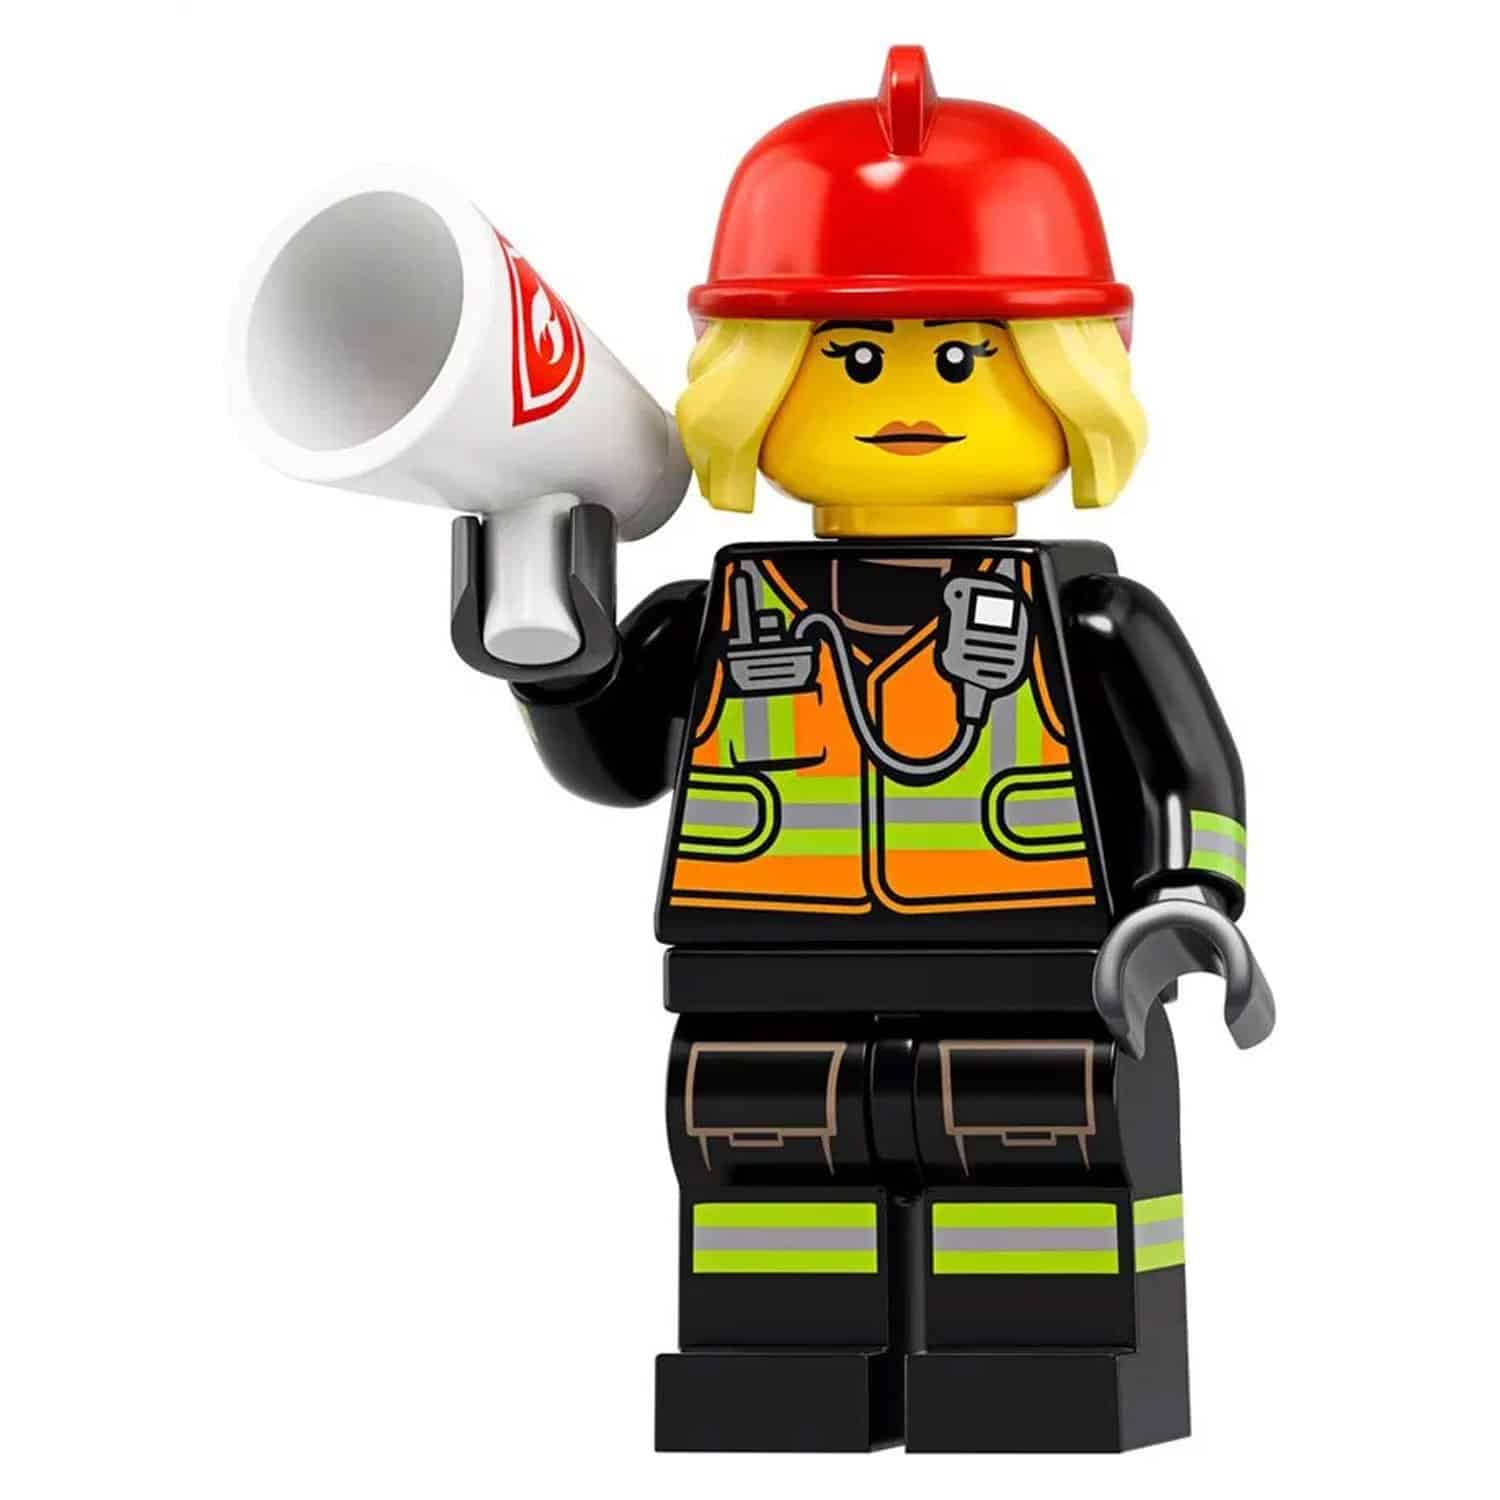 LEGO Firefighter Minifigure – Series 19 CMF